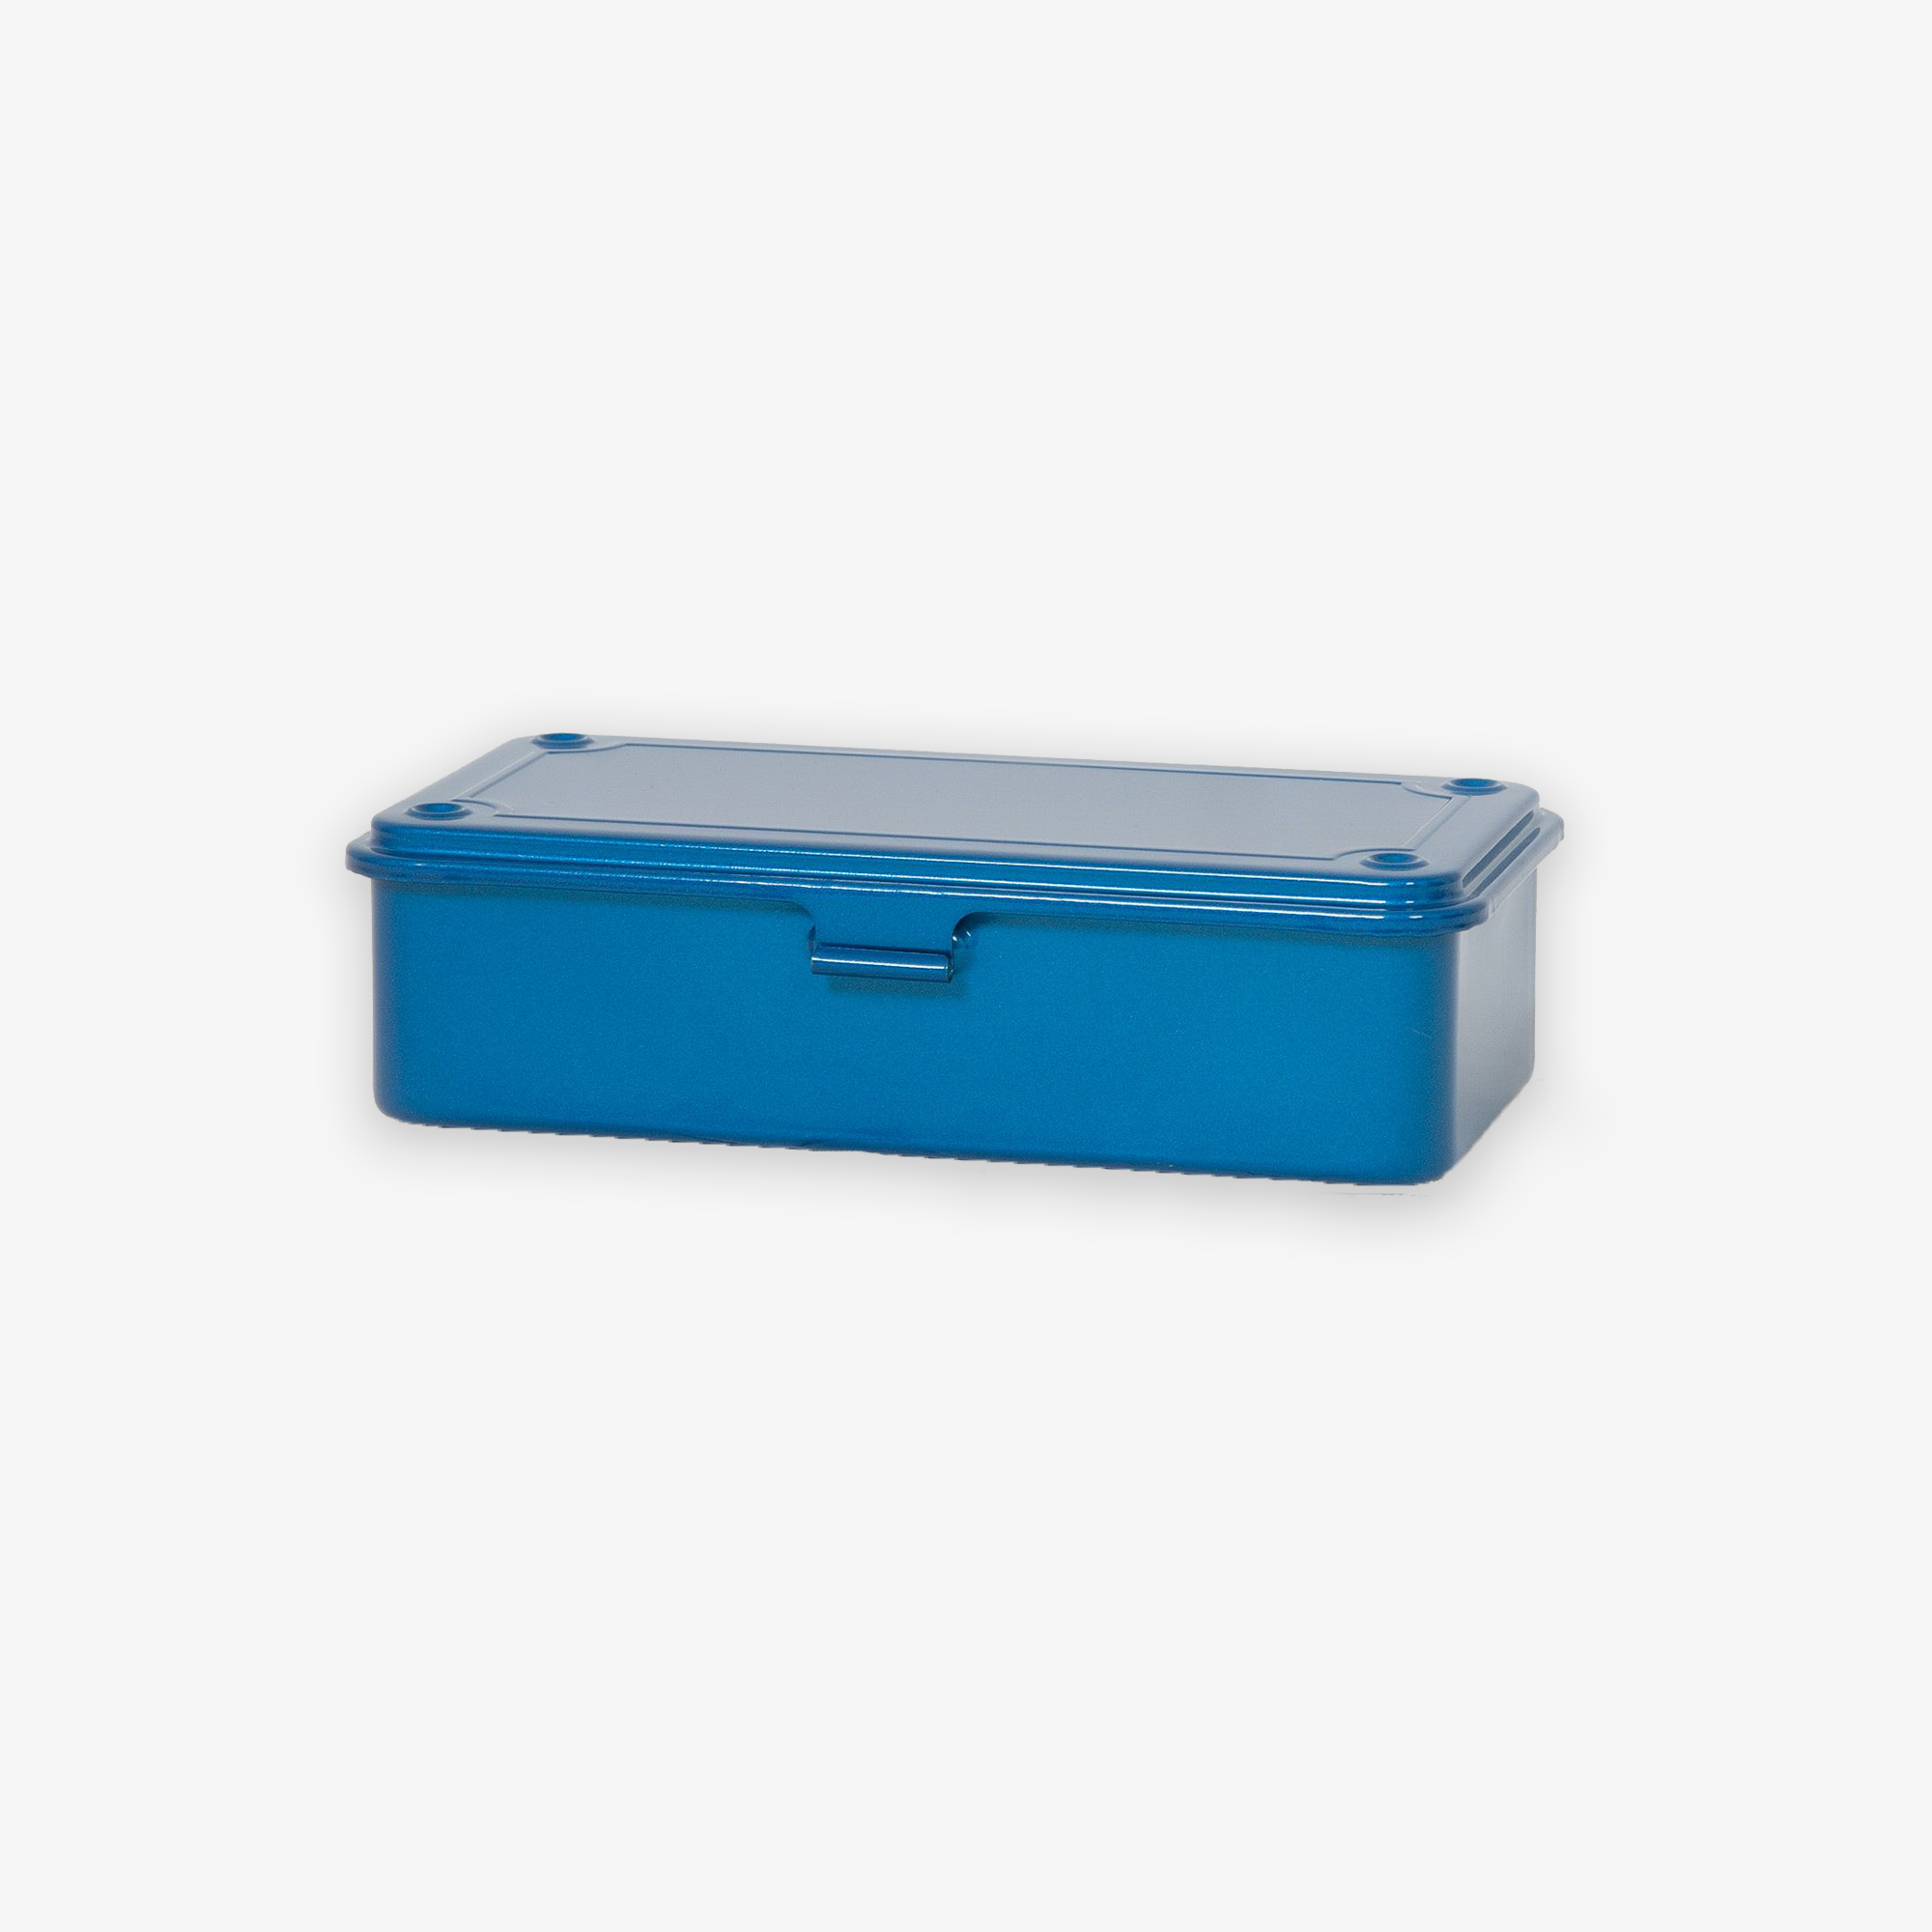 T-190 STEEL TOOL BOX // BLUE